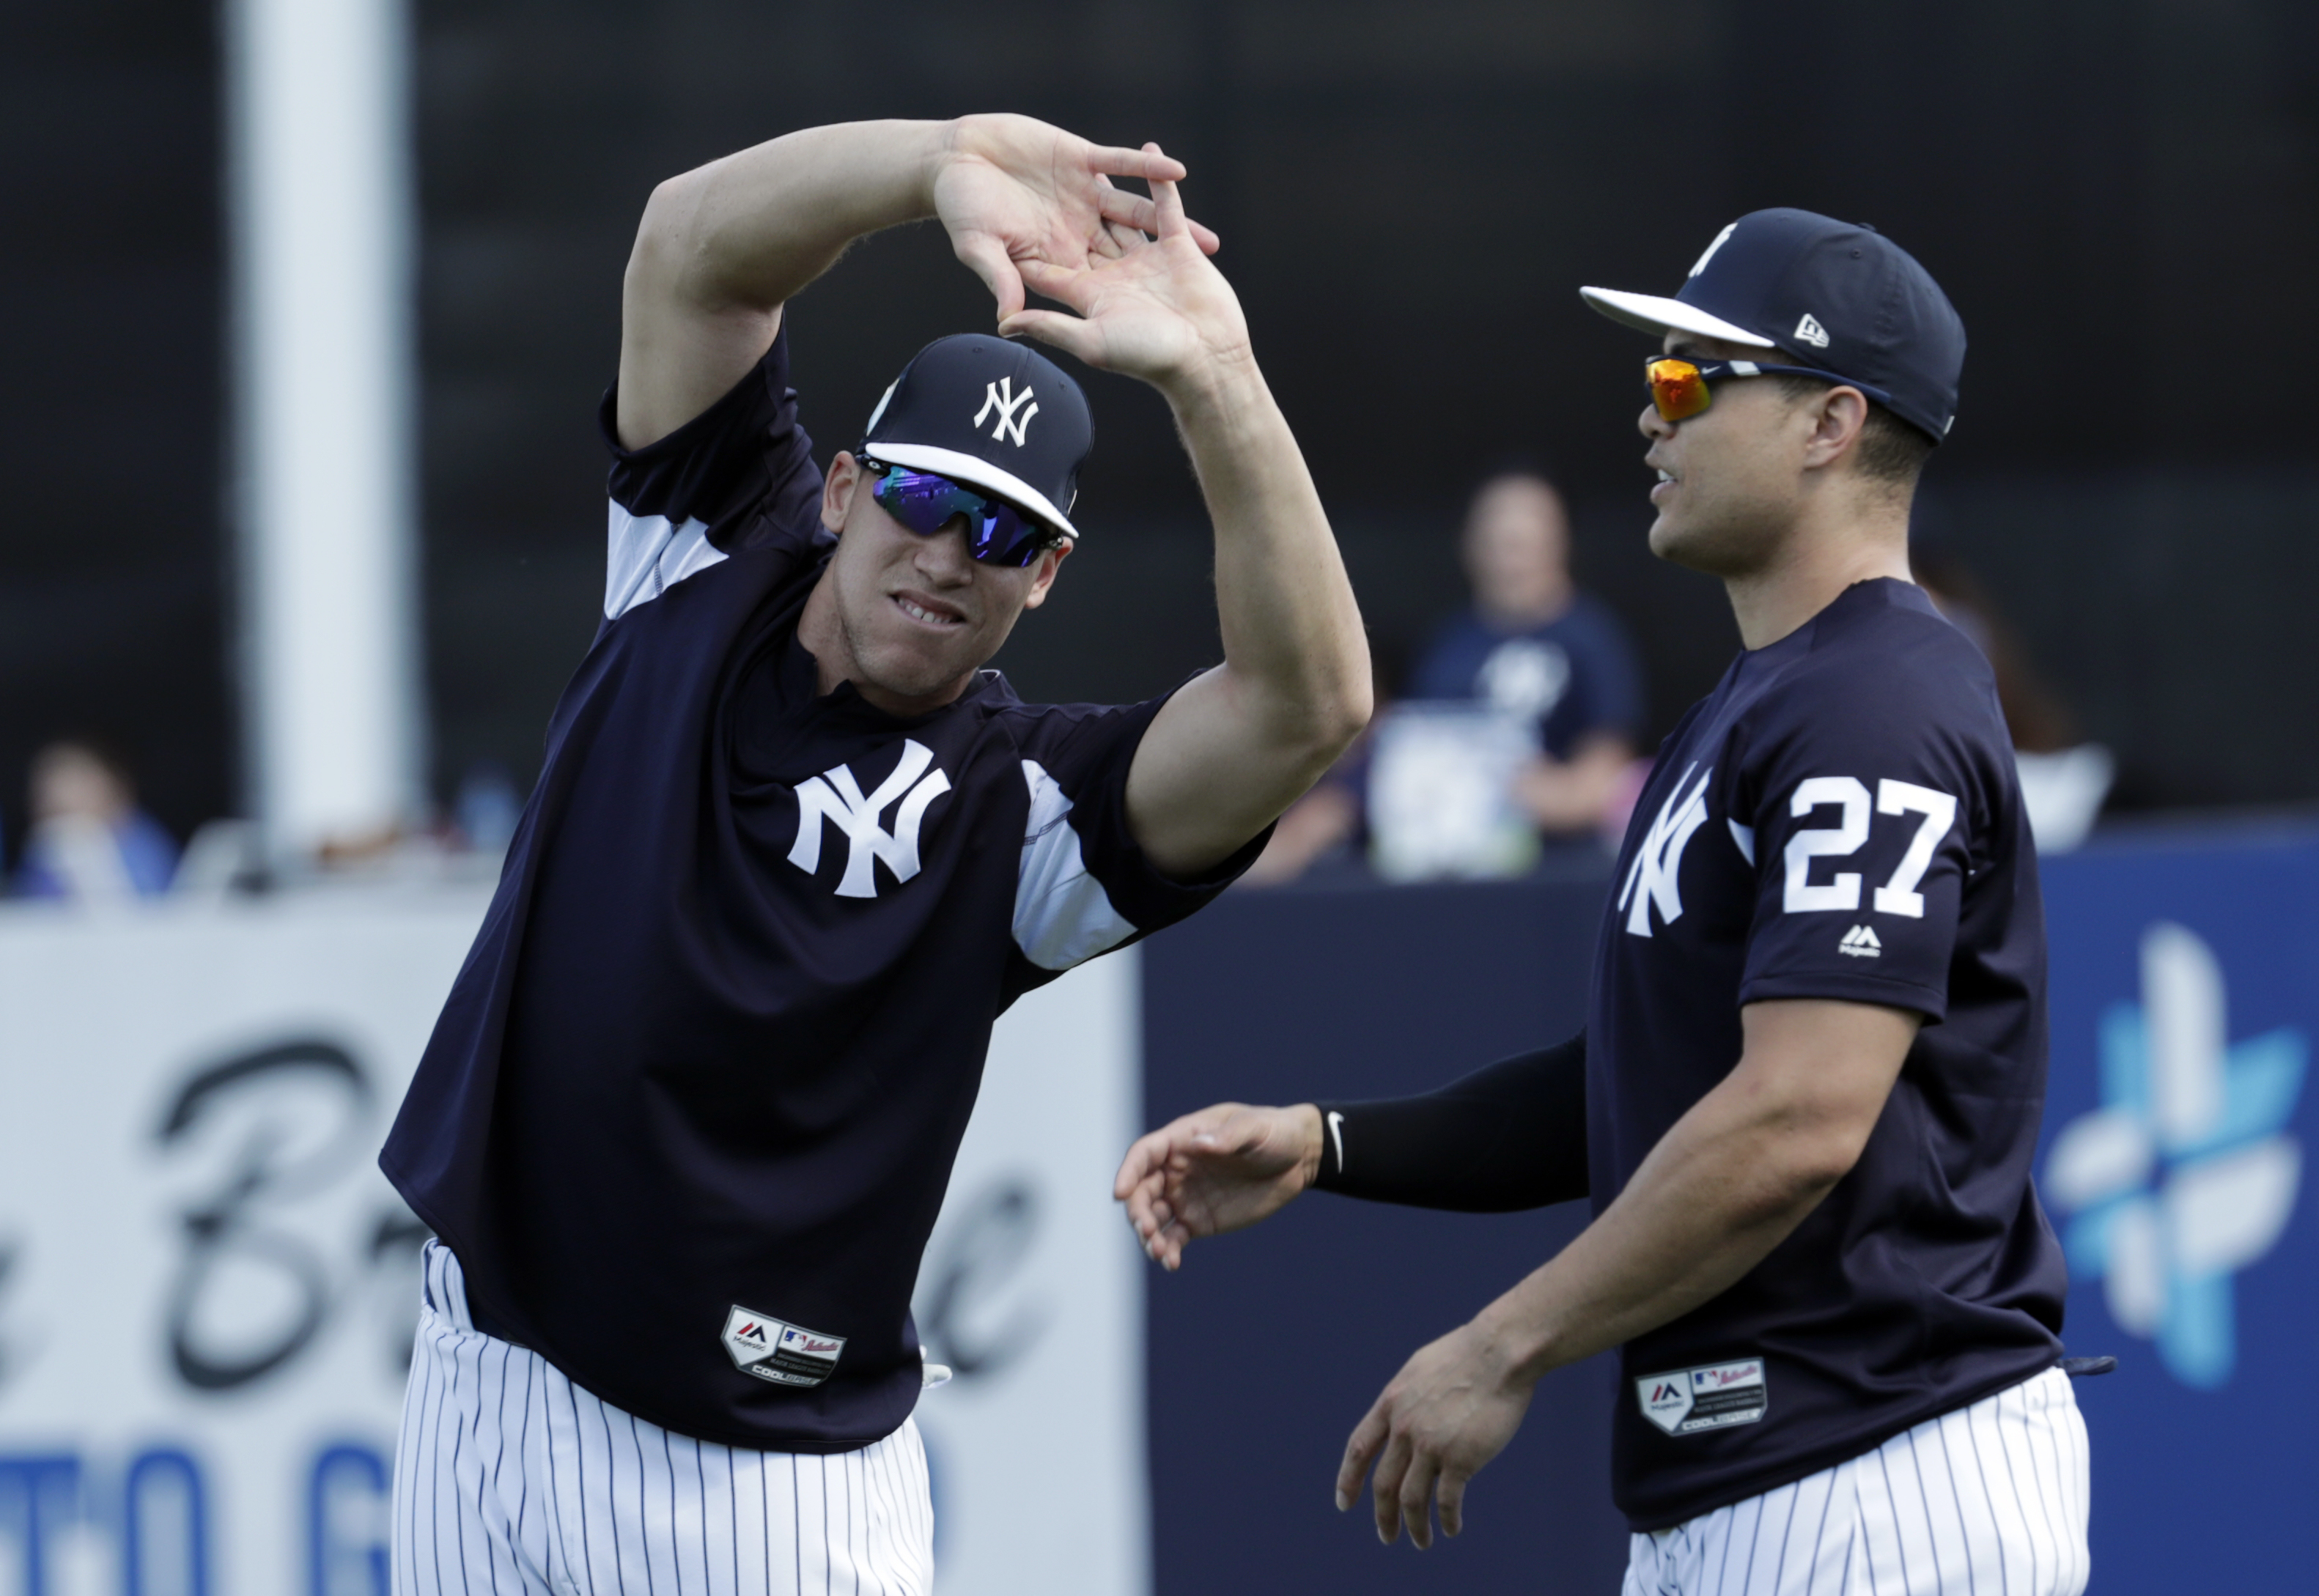 The Yankees´ Aaron Judge (left) and Giancarlo Stanton stretch at the team´s spring-training camp in Tampa.